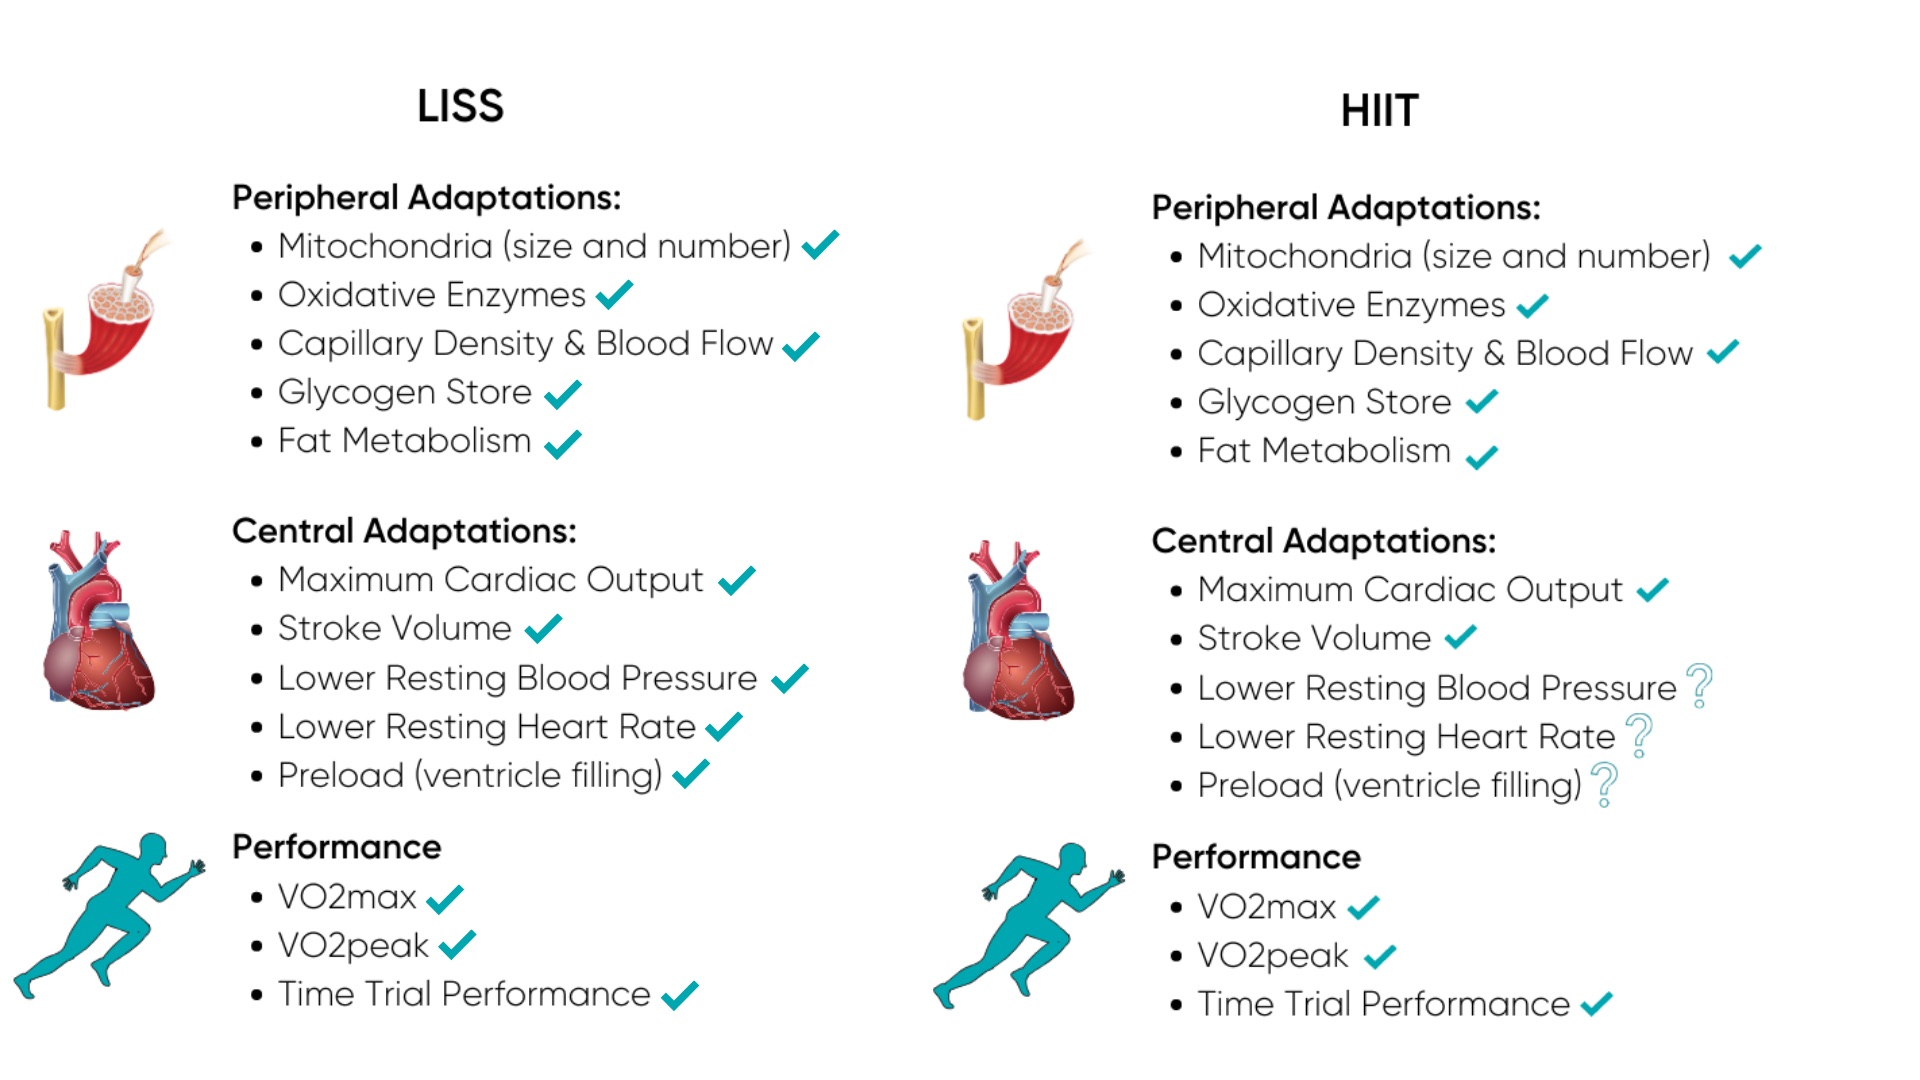 HIIT vs LISS Physiological Adaptations